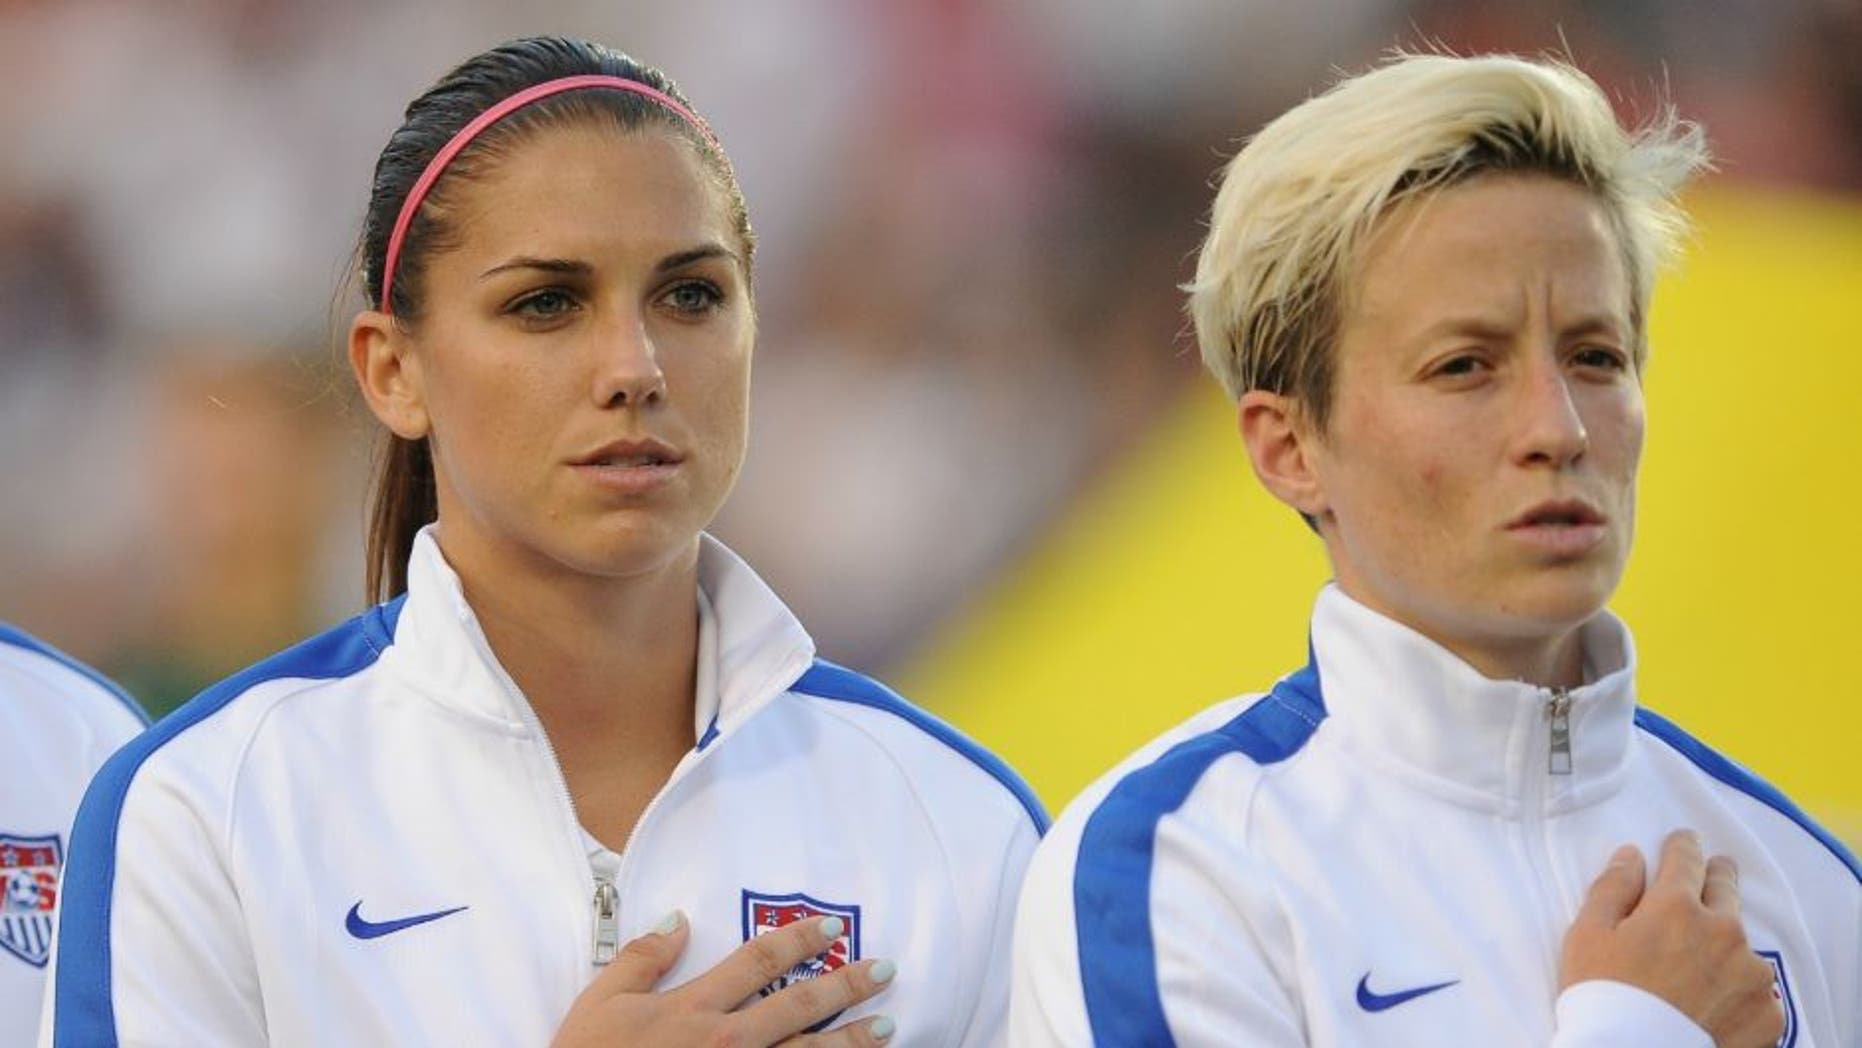 CARY, NC - AUGUST 20: Lauren Holiday #12, Alex Morgan #13 and Megan Rapinoe #15 of the U.S. women's national team stand at attention during the National Anthem prior to their match against the Swiss women's national team at WakeMed Soccer Park on August 20, 2014 in Cary, North Carolina. (Photo by Lance King/Getty Images)